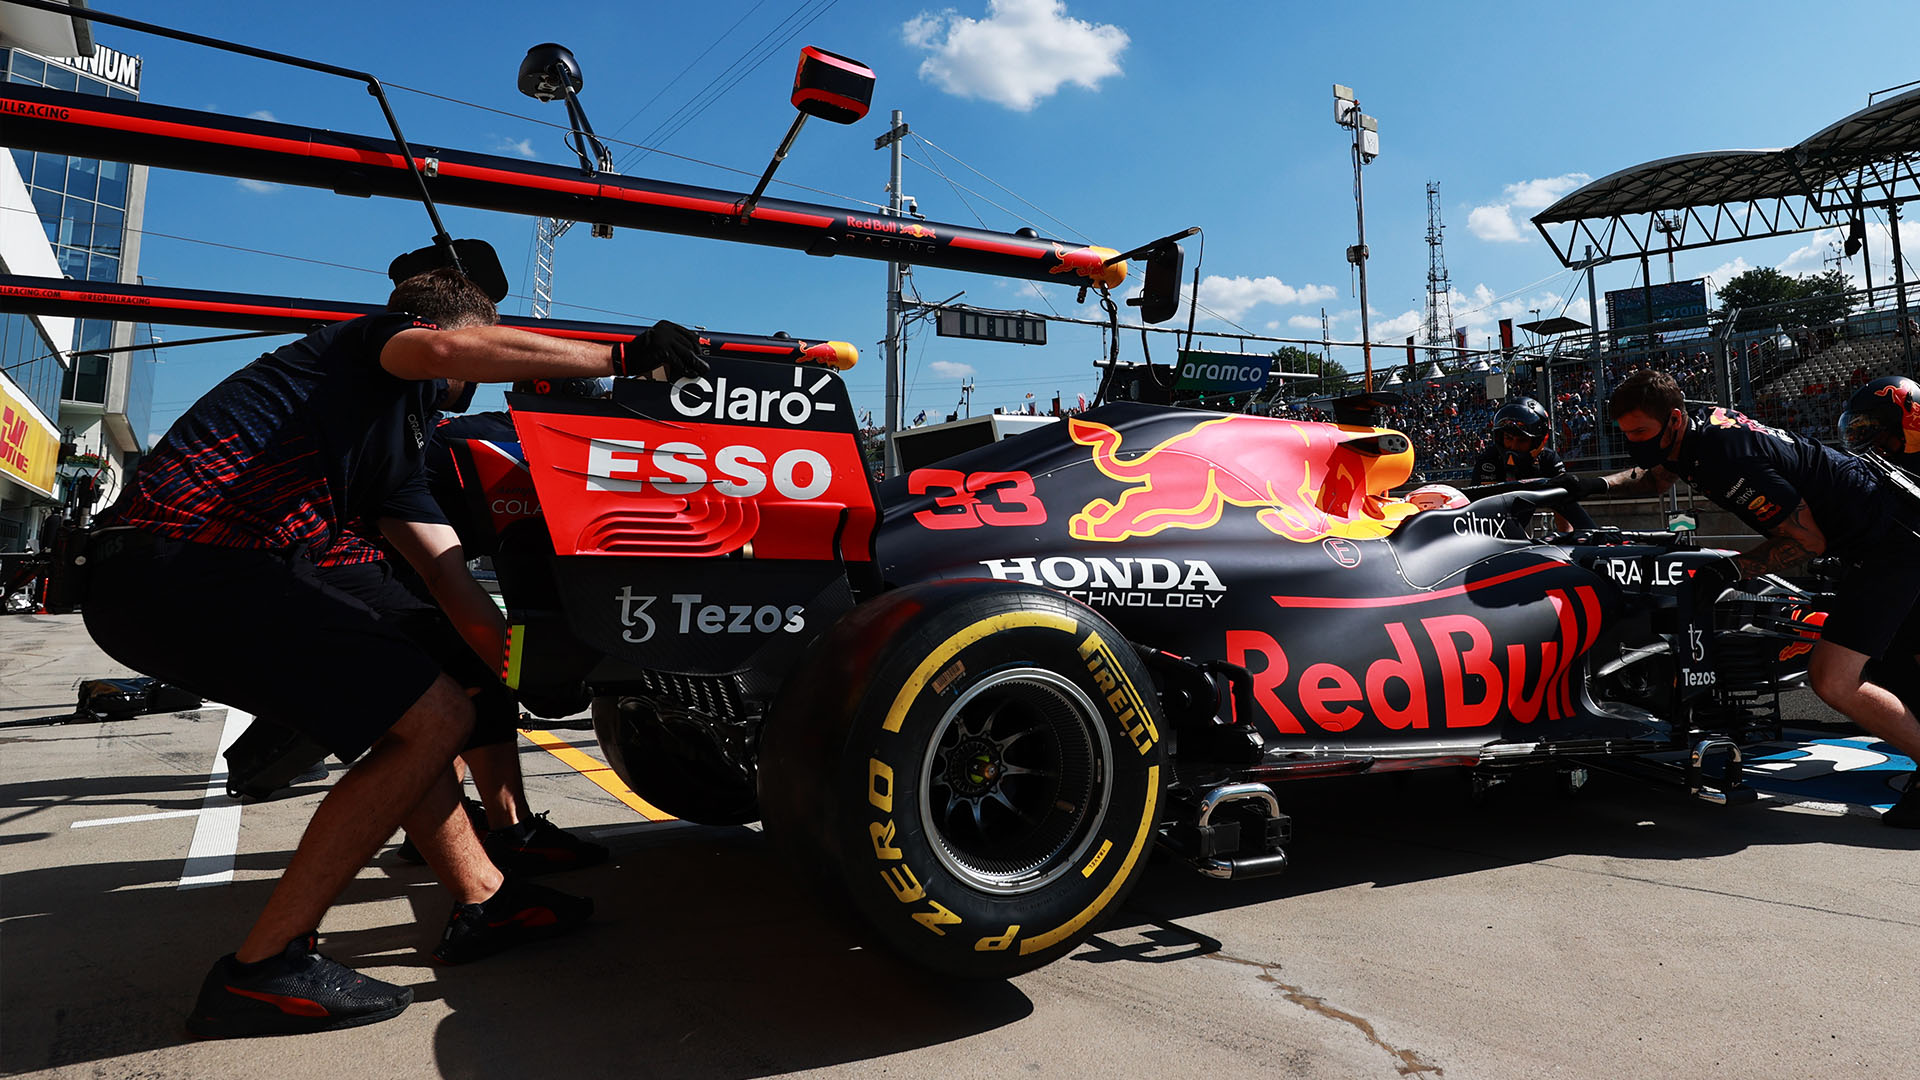 Verstappen's Silverstone crash power unit given the all-clear by Honda after Friday running in Hungary